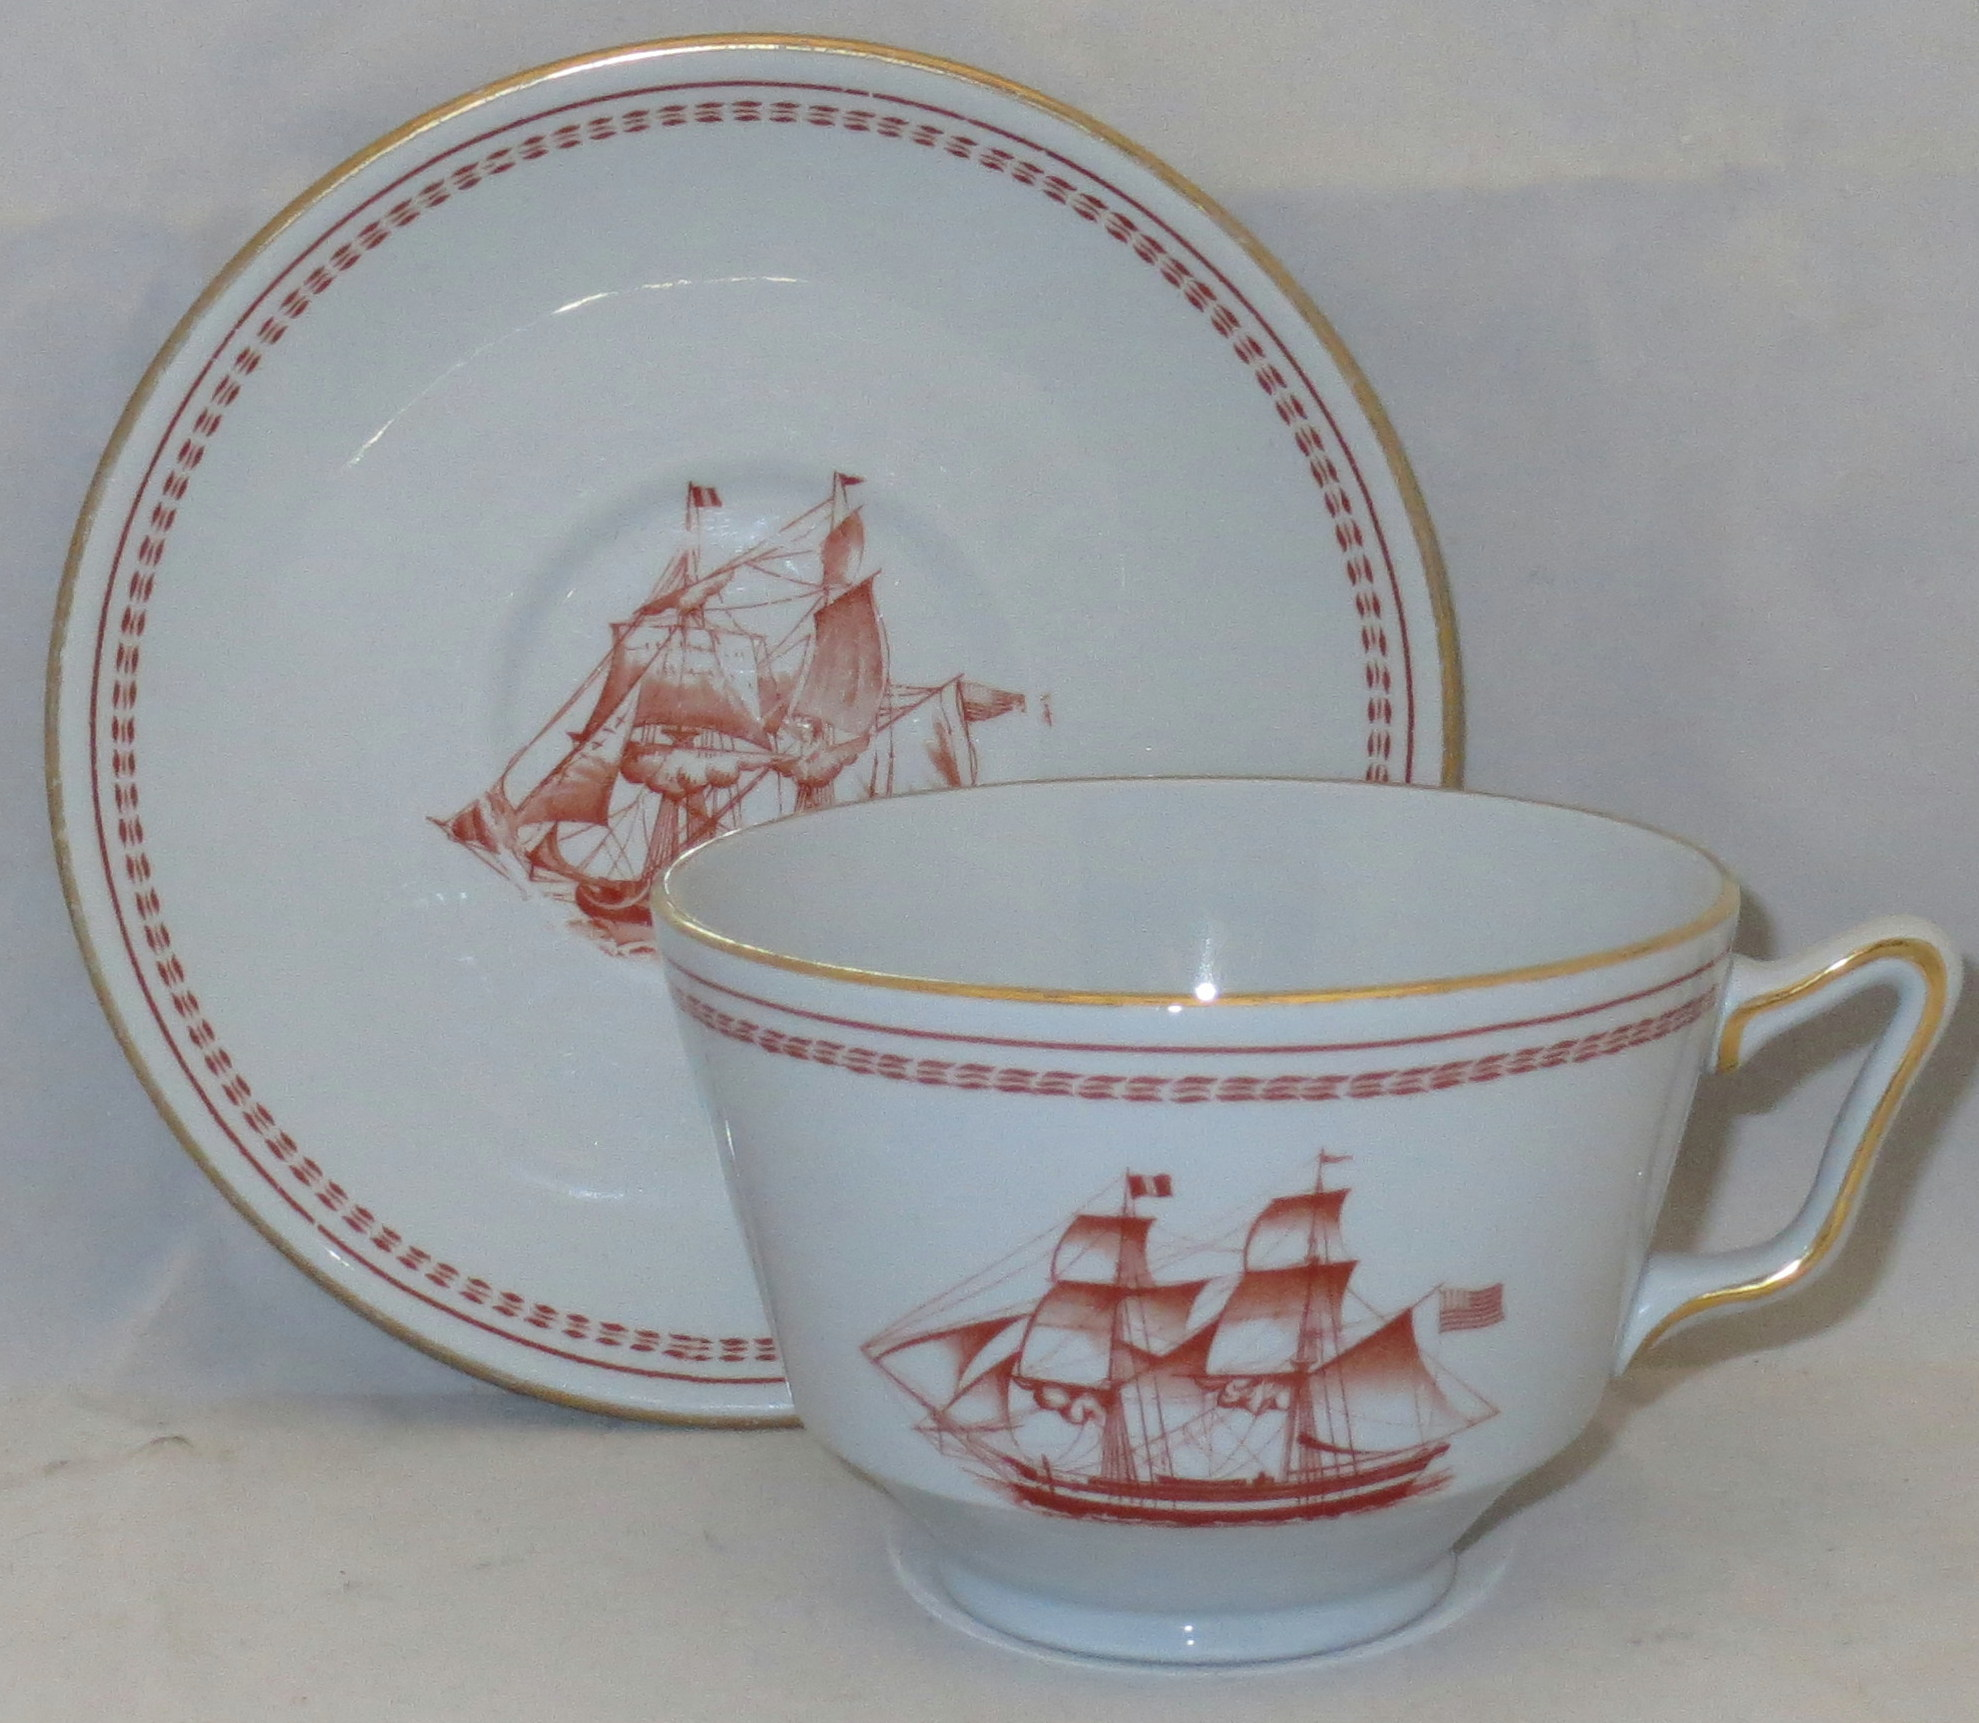 Spode Trade Winds-Red London Shape Footed Cup & Saucer Set